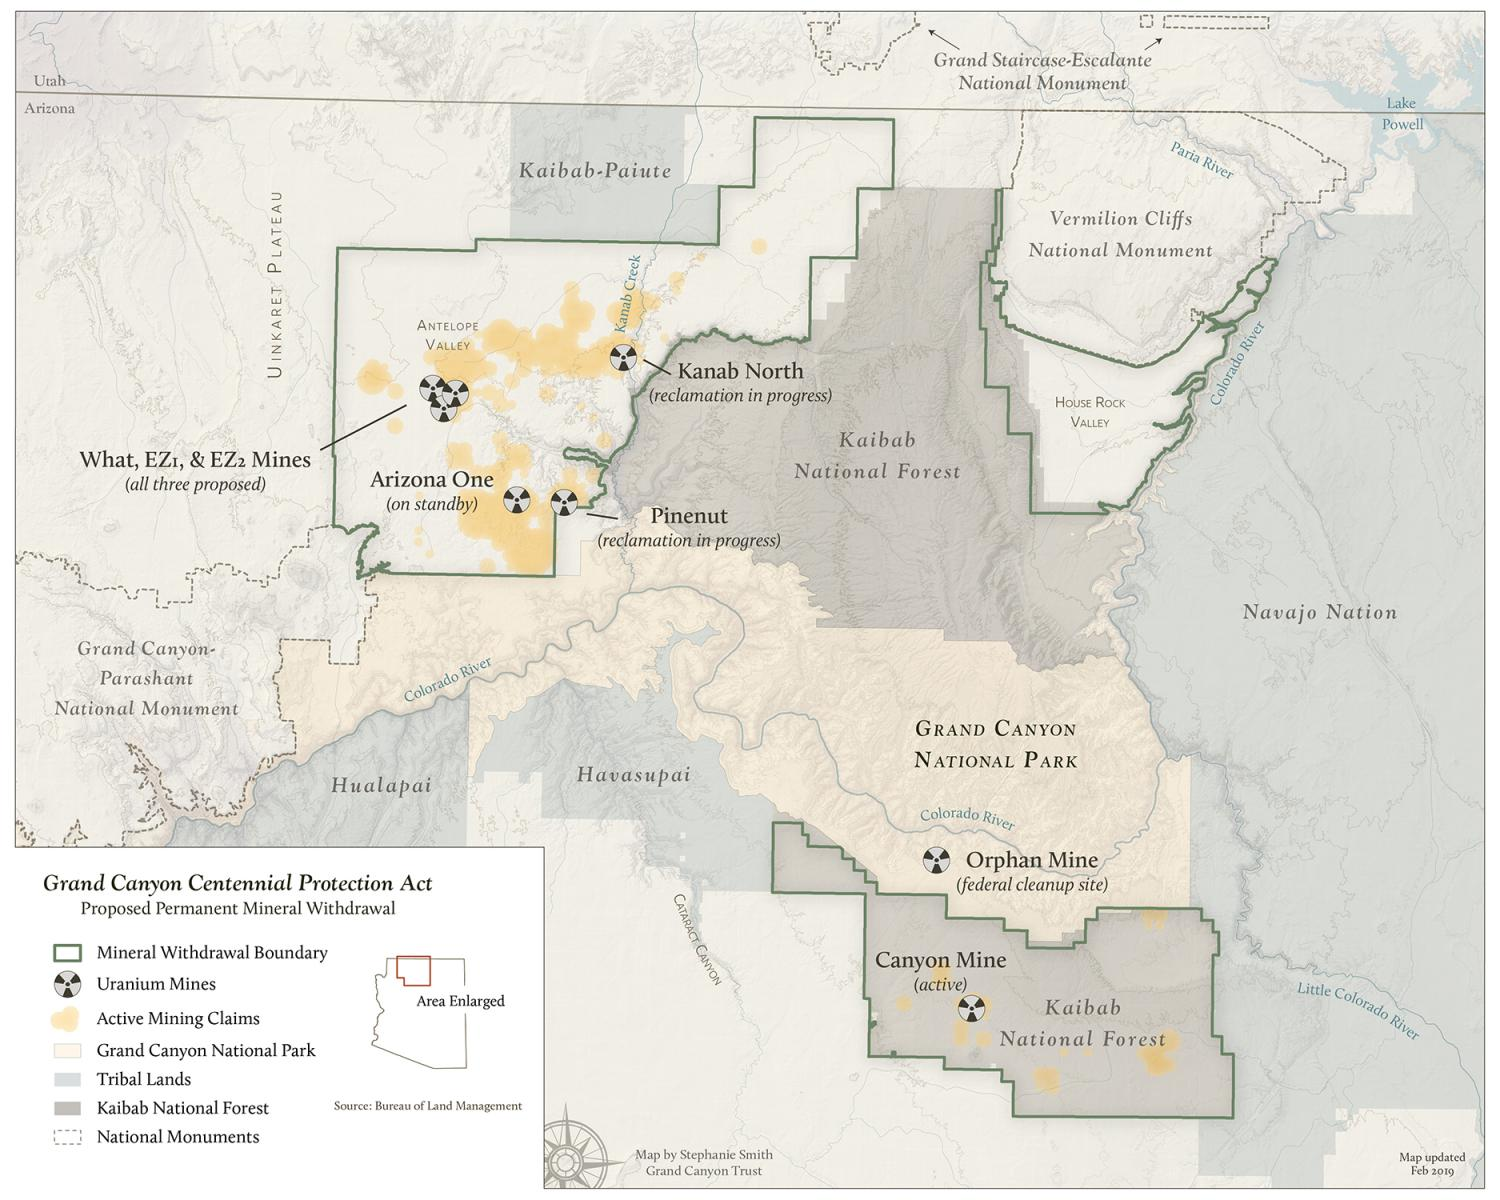 Map of uranium claims in Grand Canyon withdrawal area.